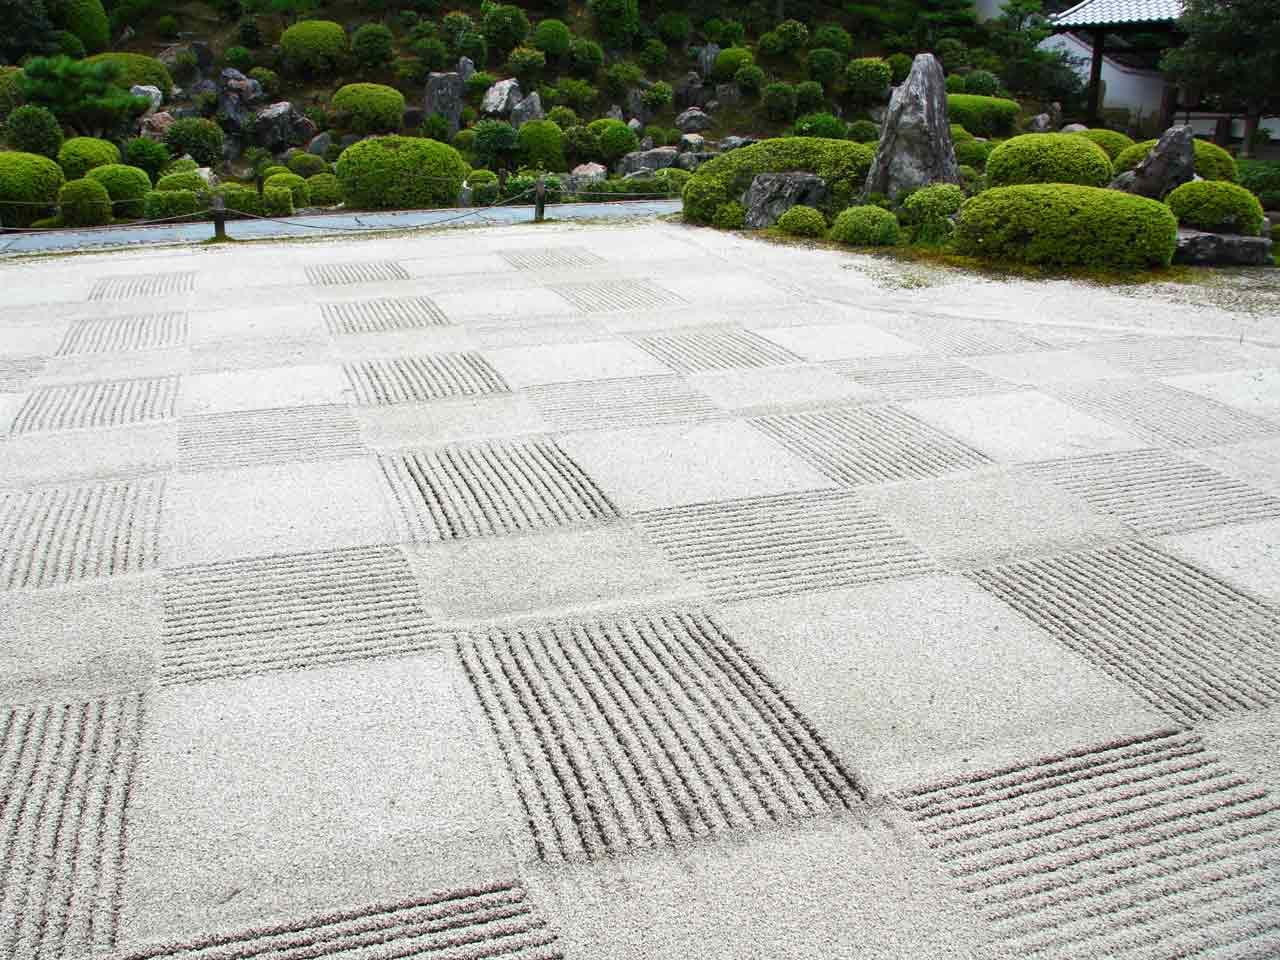 The saga guide to zen garden design saga Pictures of zen rock gardens